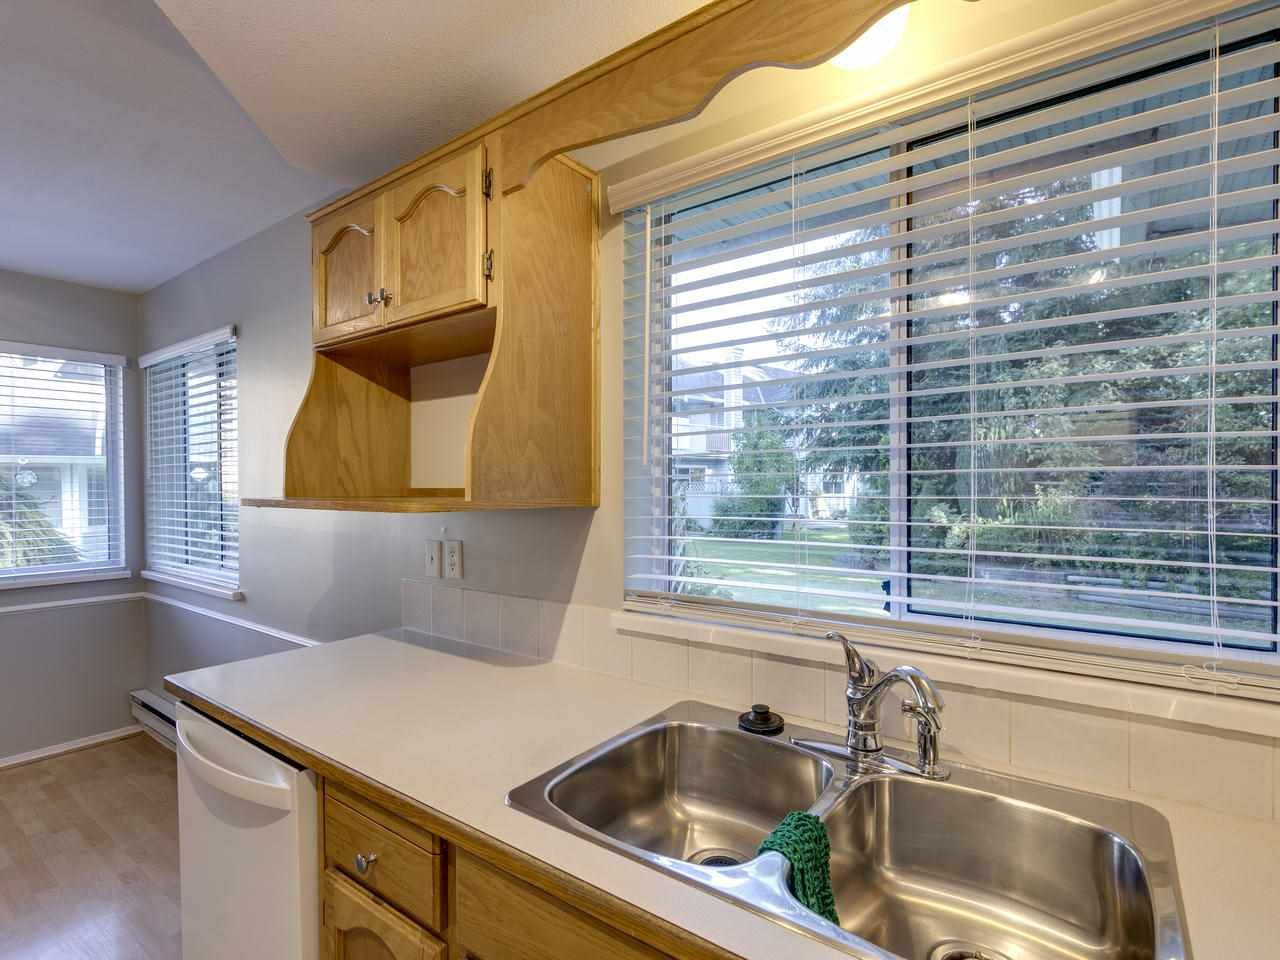 """Photo 27: Photos: 127 22555 116 Avenue in Maple Ridge: East Central Townhouse for sale in """"HILLSIDE"""" : MLS®# R2493046"""